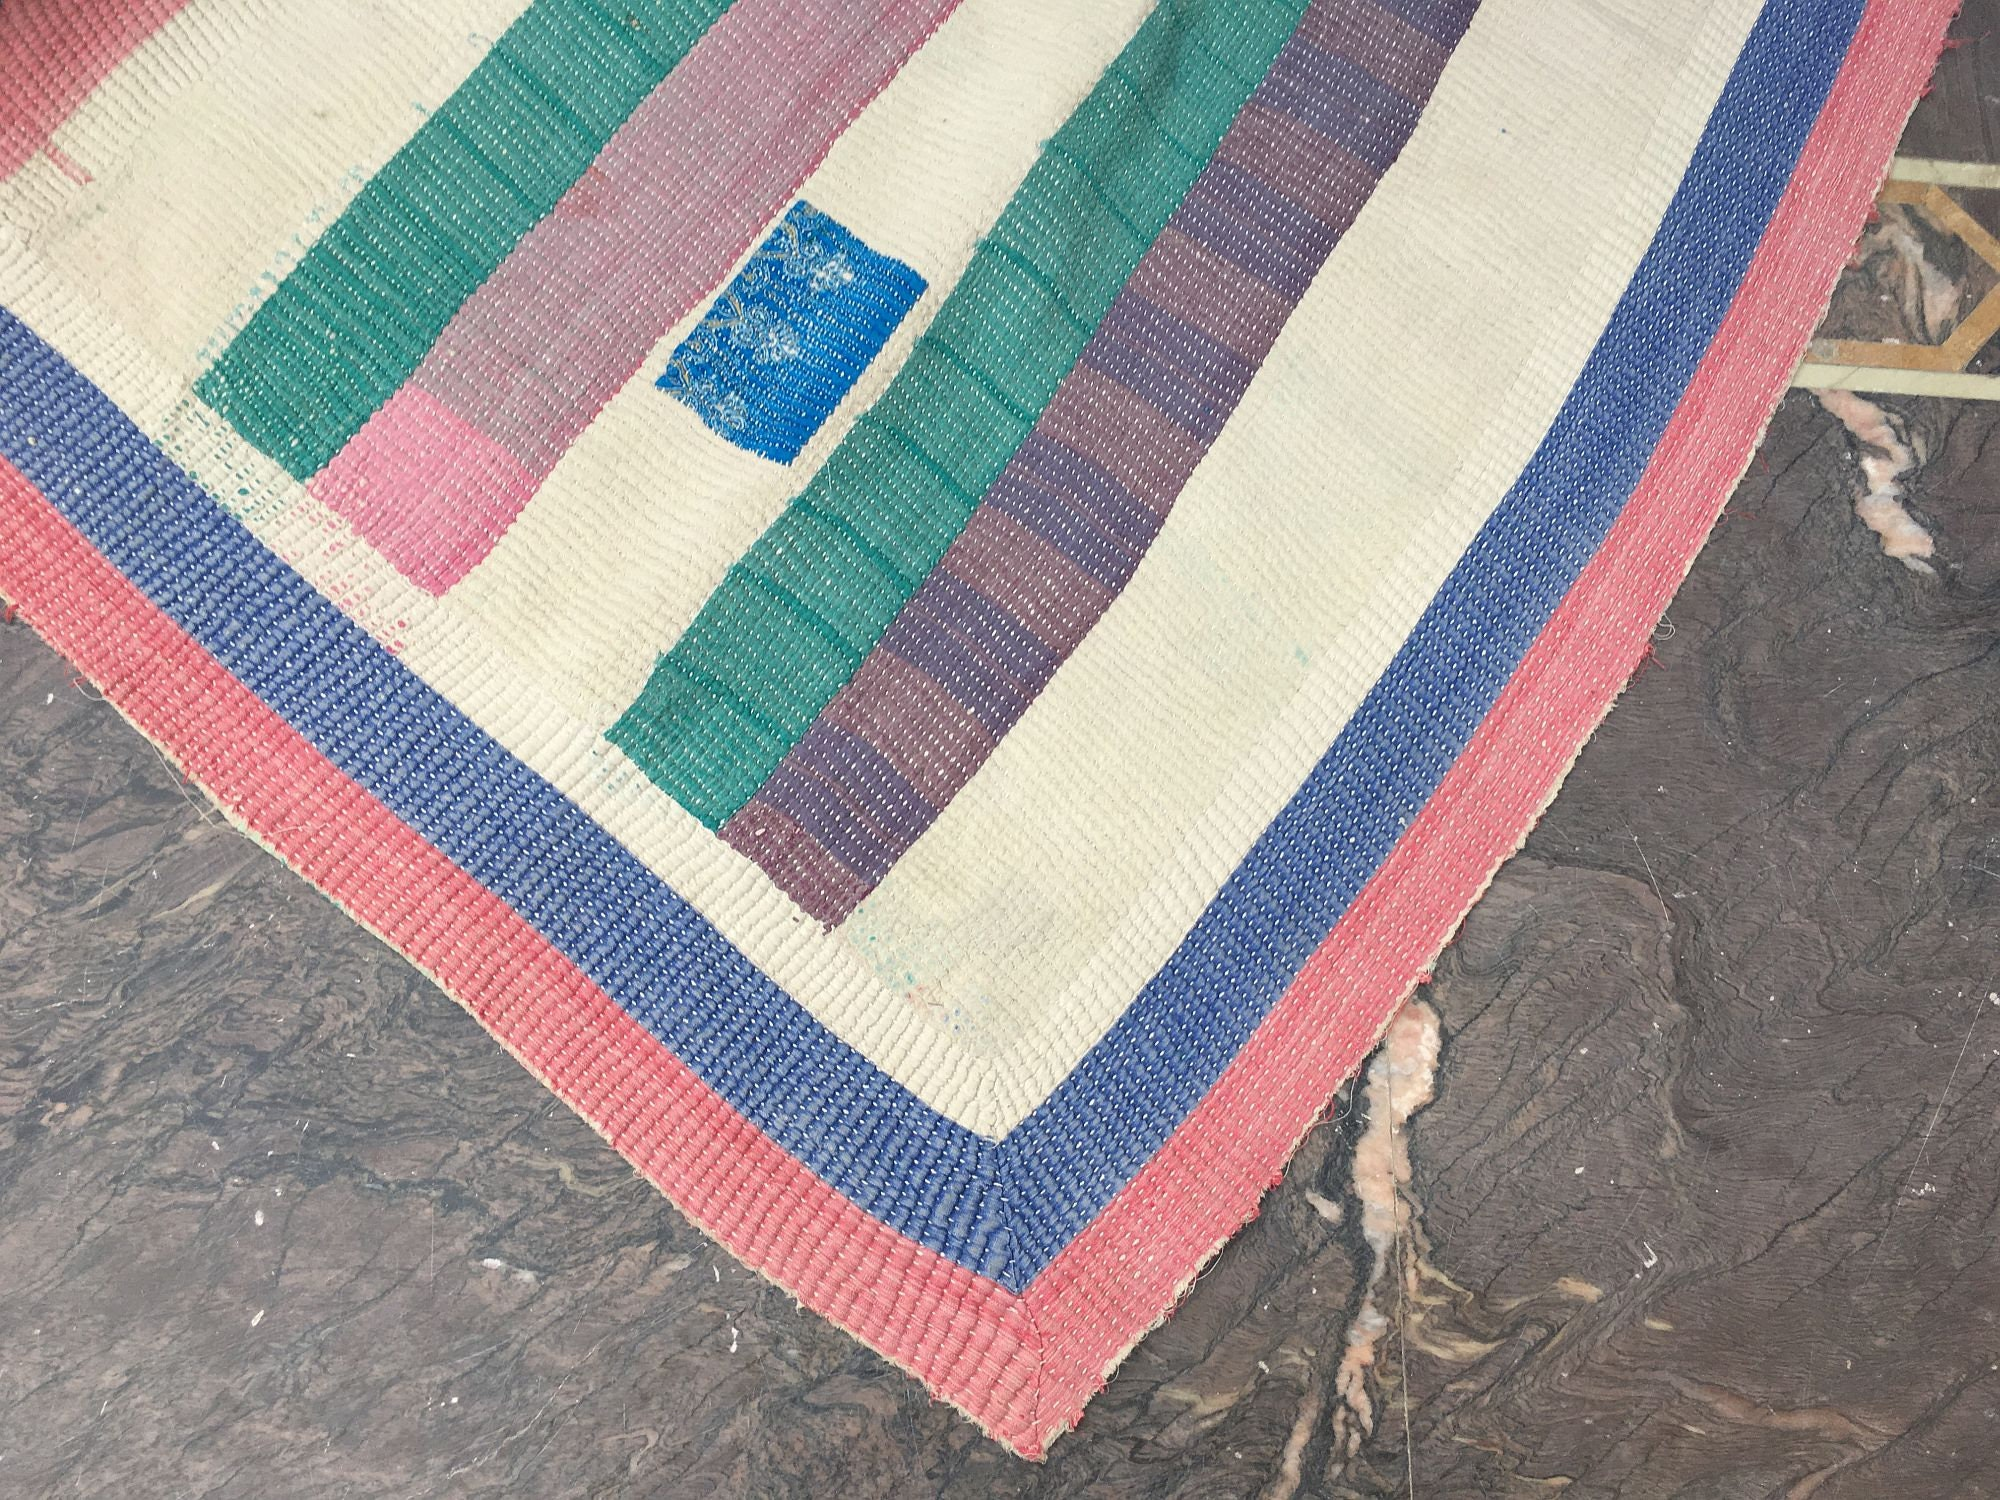 Indian Sari Patchwork Kantha Quilt Multi Colorful Kantha Blanket Reversible Cotton Sari Kantha Throw Striped Design Kantha Bedspread